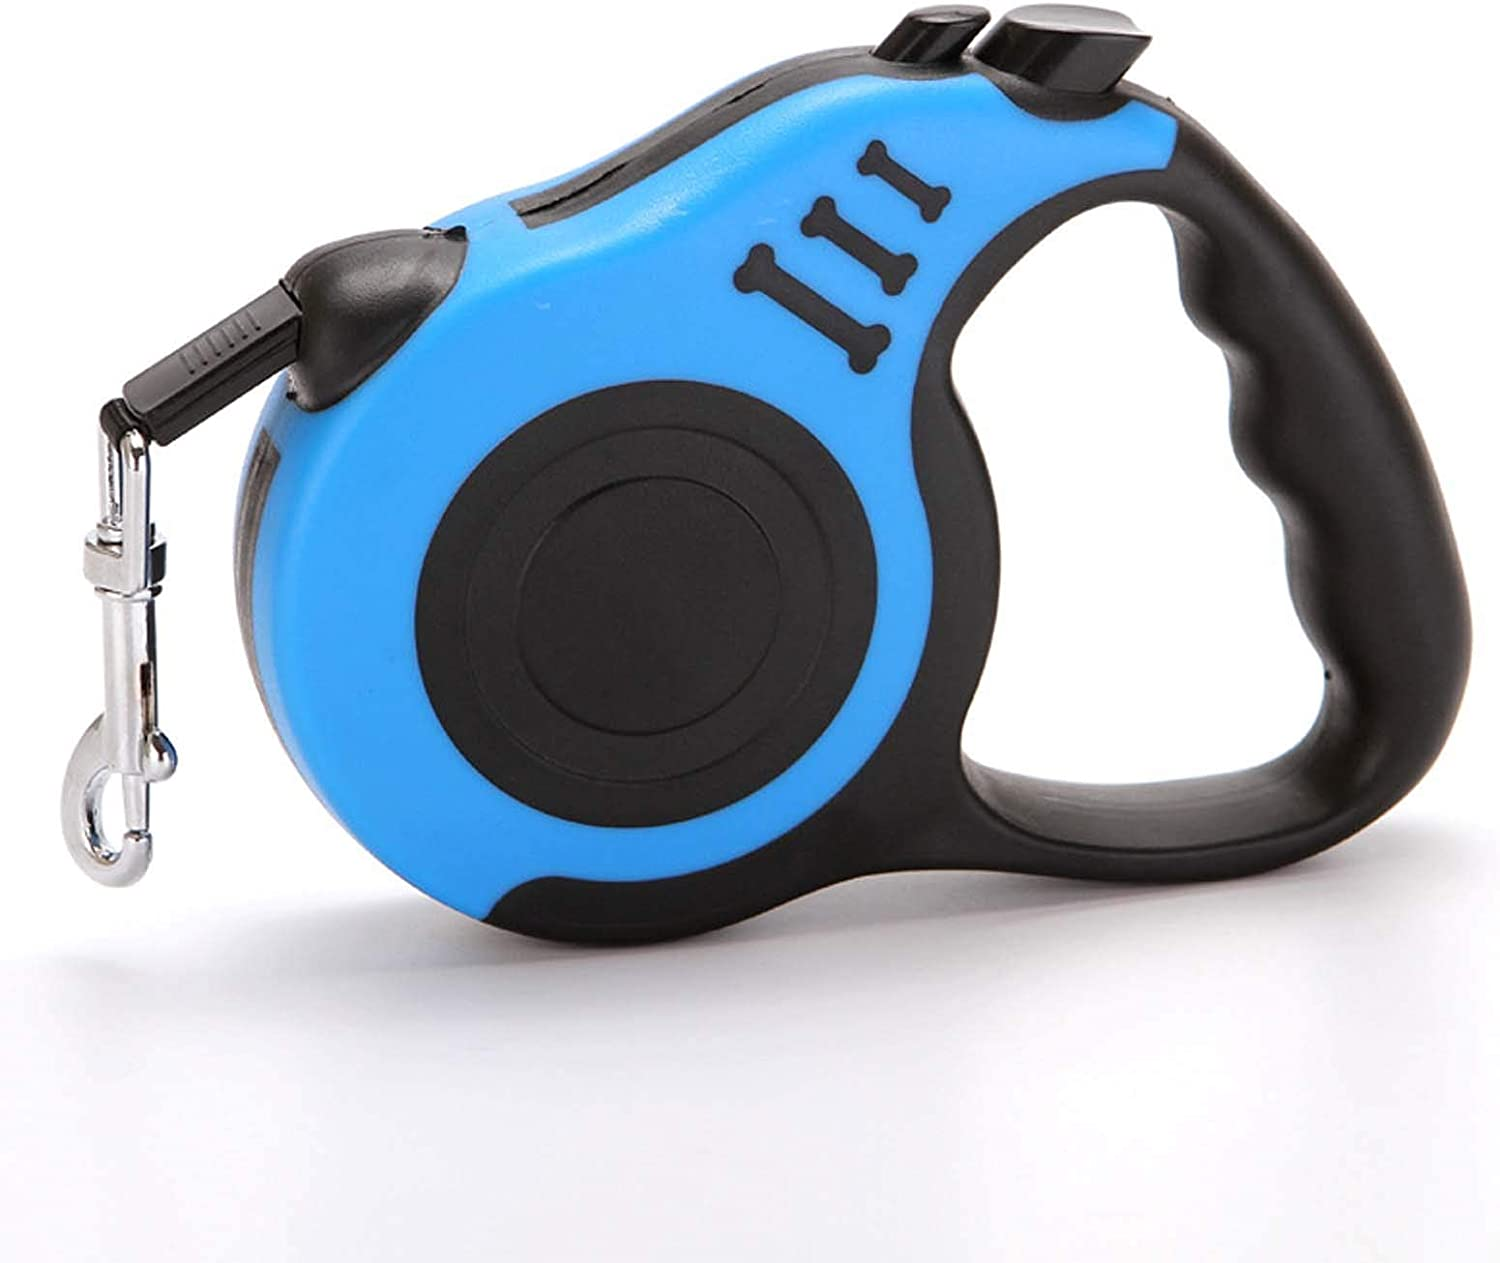 QDY Max 75% OFF -Retractable Al sold out. Dog Leash for Large Medium He 10 16 Ft Dogs